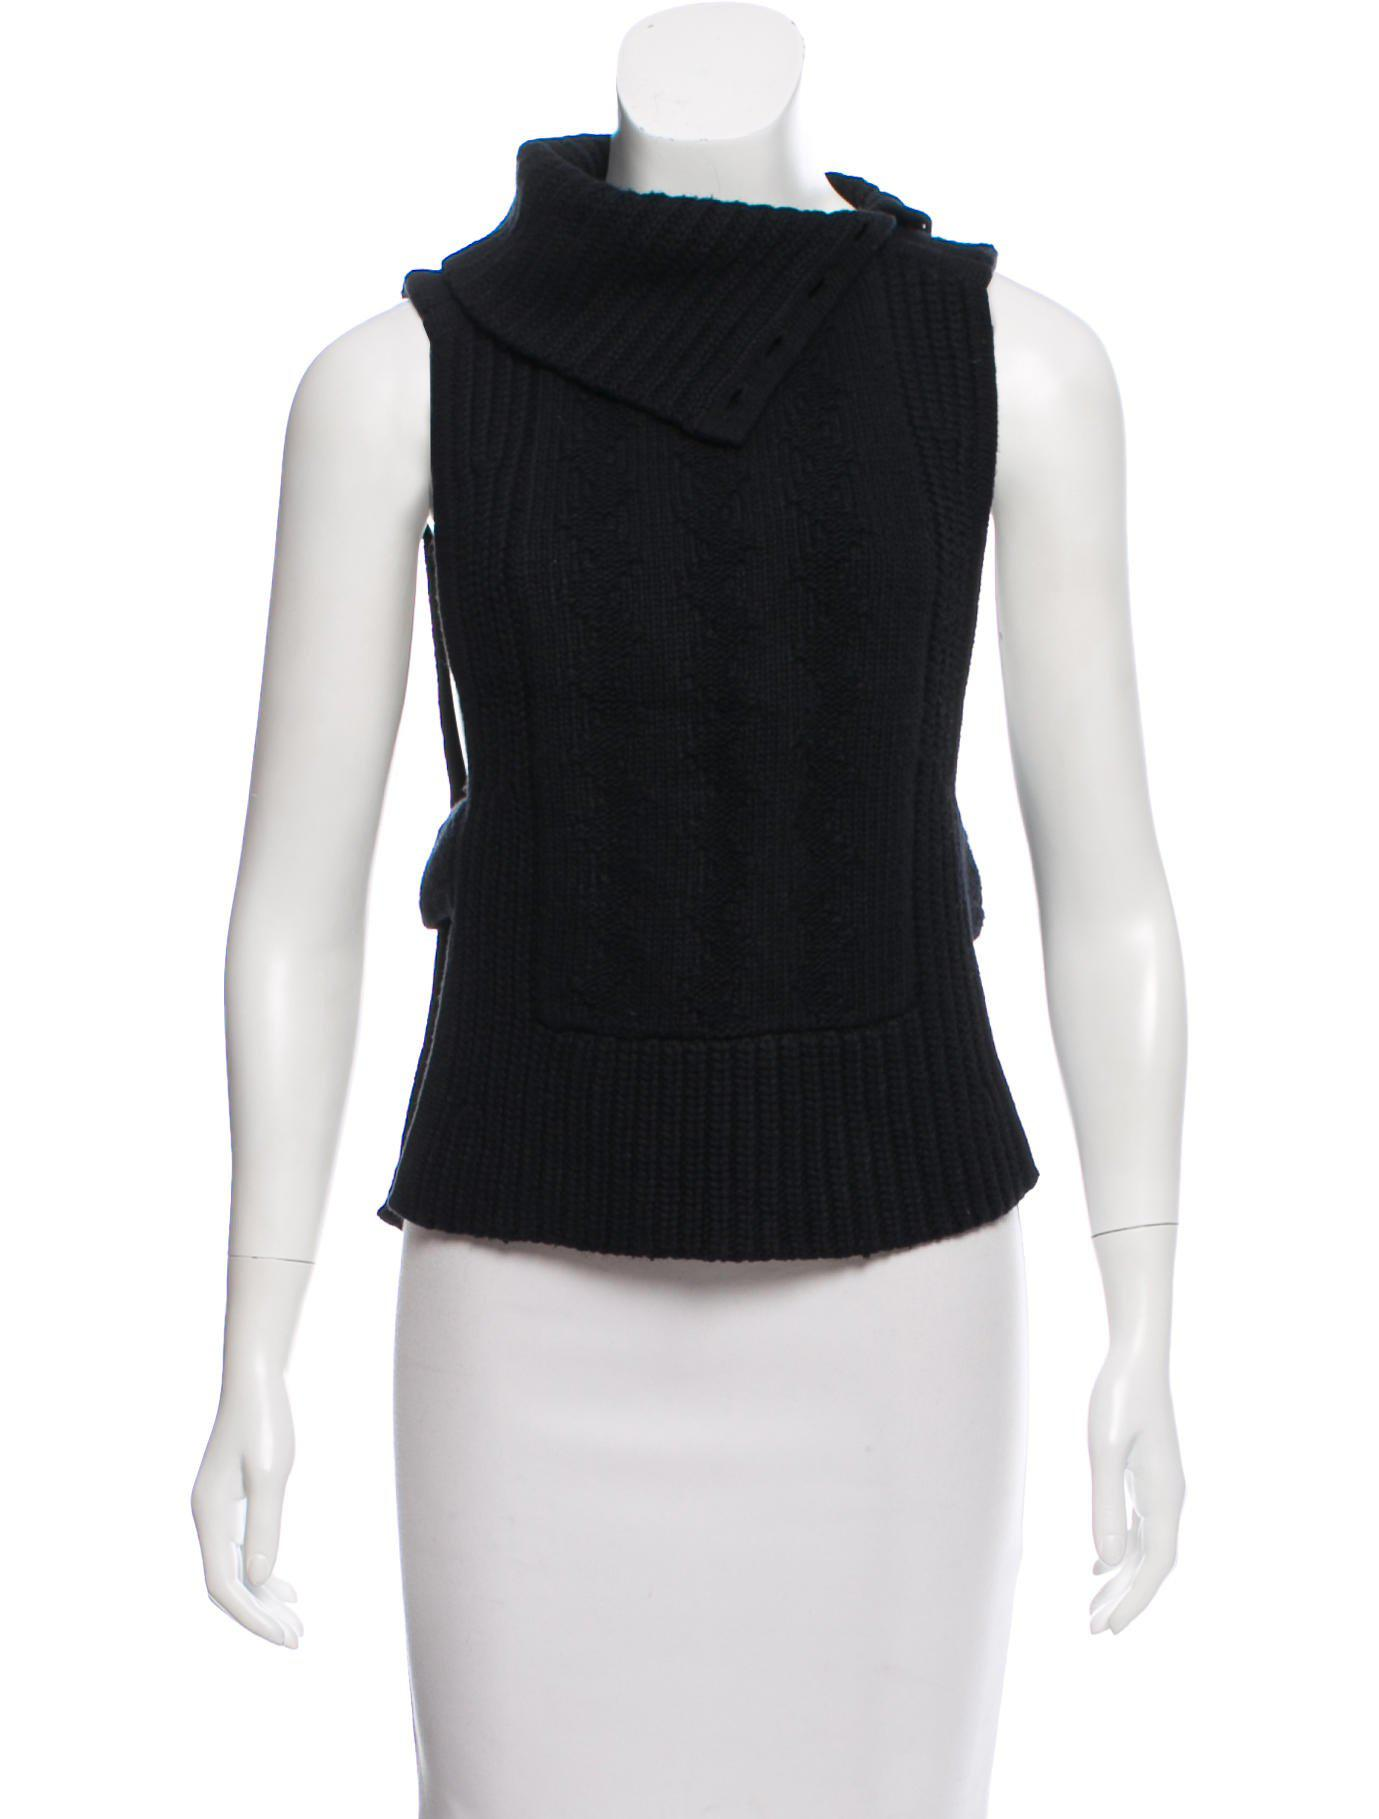 Mayle Lightweight Sleeveless Top Buy Cheap Countdown Package Finishline Sale Online Discount Websites hqHPnjWNbc